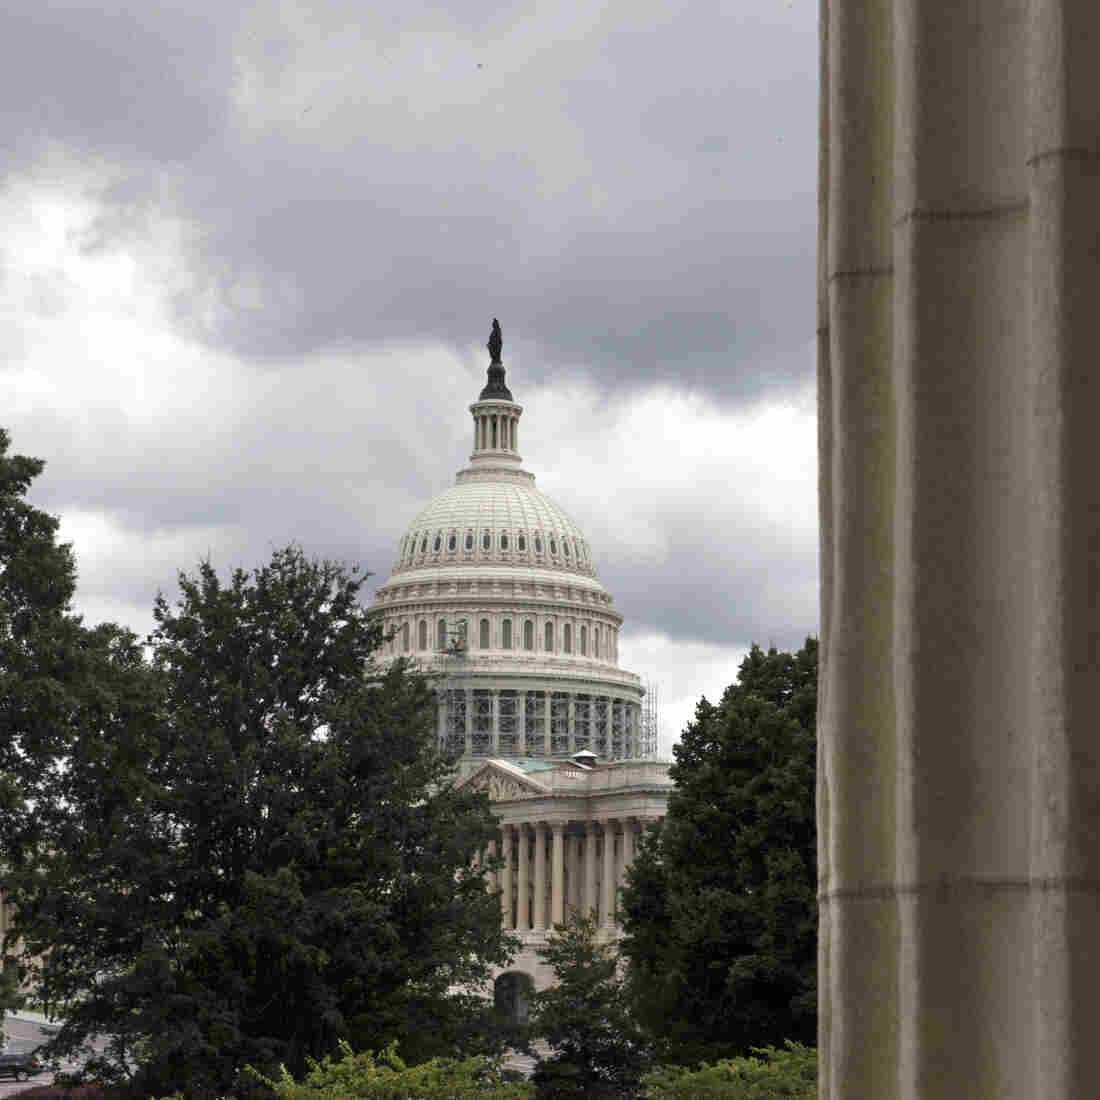 Members of the Senate and the House of Representatives return to work at the Capitol this week after a five-week vacation. They must get to work on a continuing resolution to extend funding for government agencies to prevent a government shutdown.